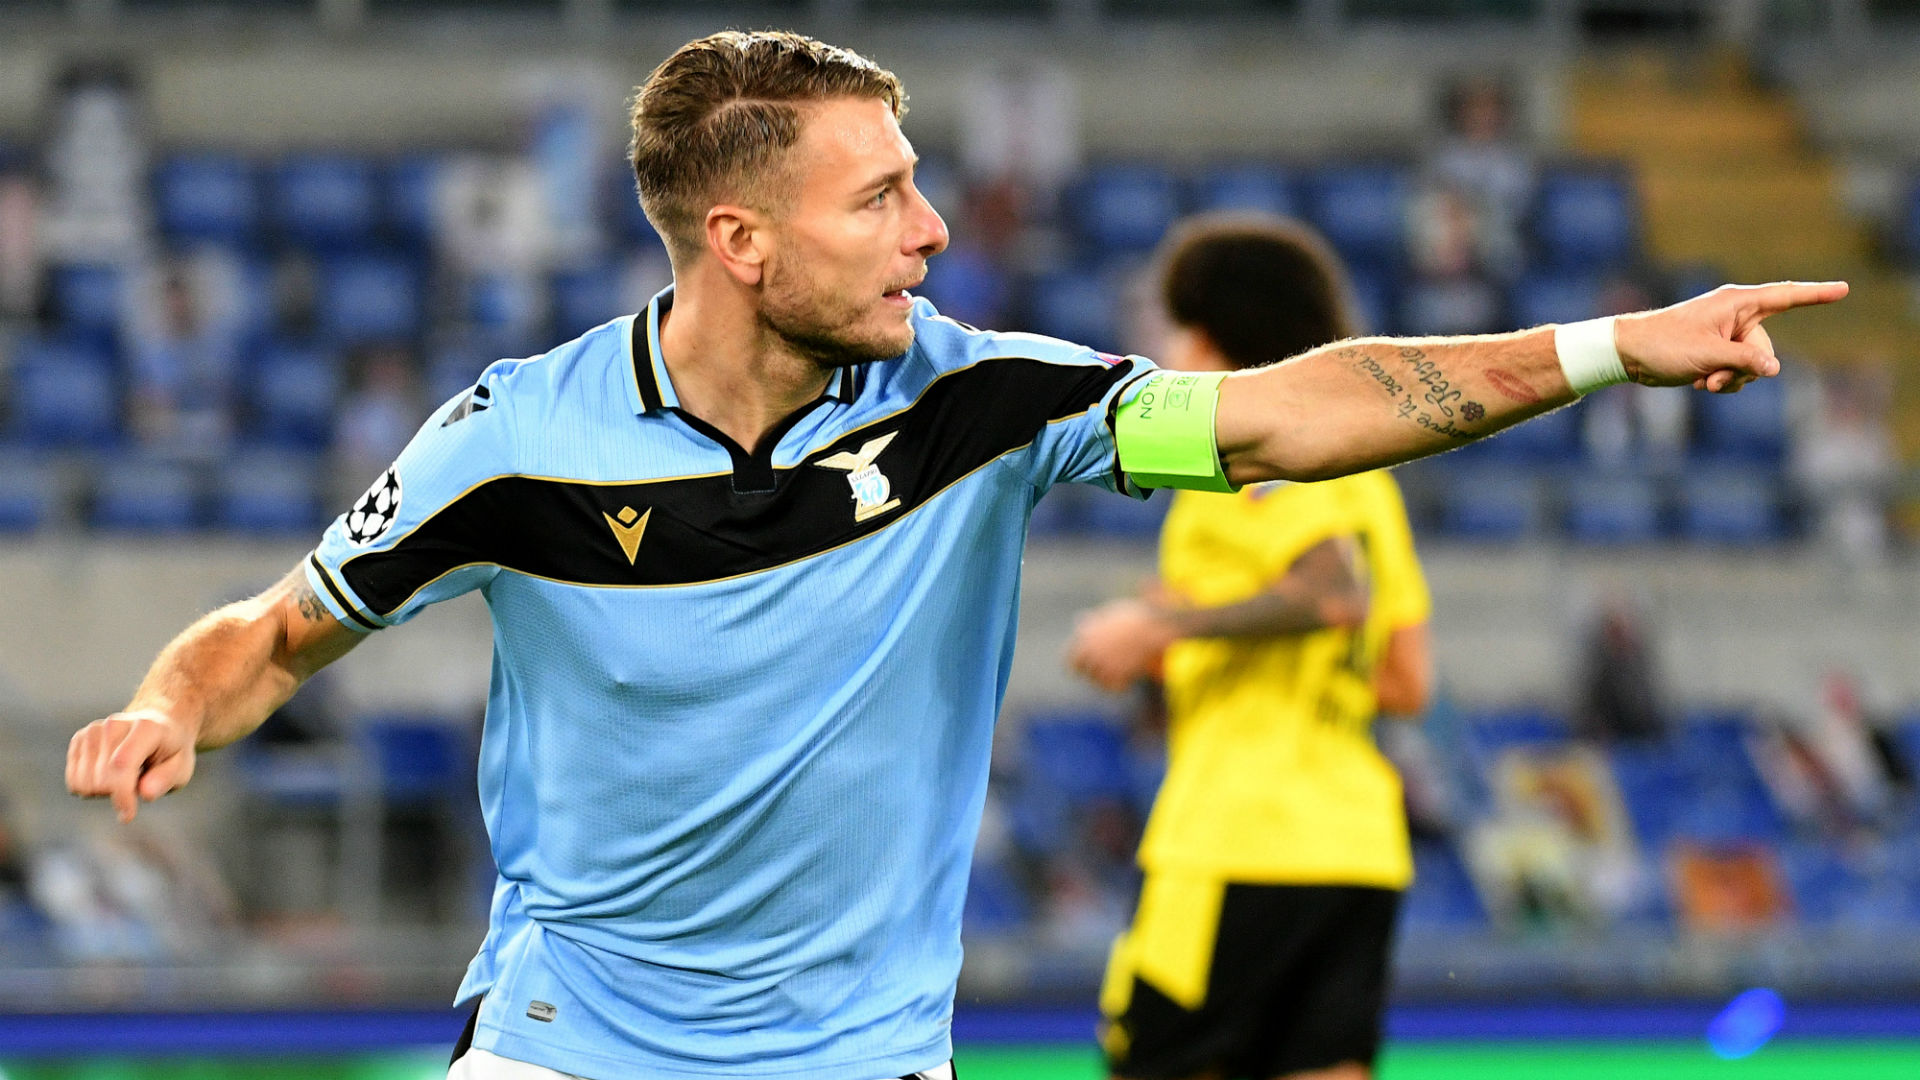 'They said I was the worst signing?' - Immobile aims dig at Dortmund after inspiring Lazio win